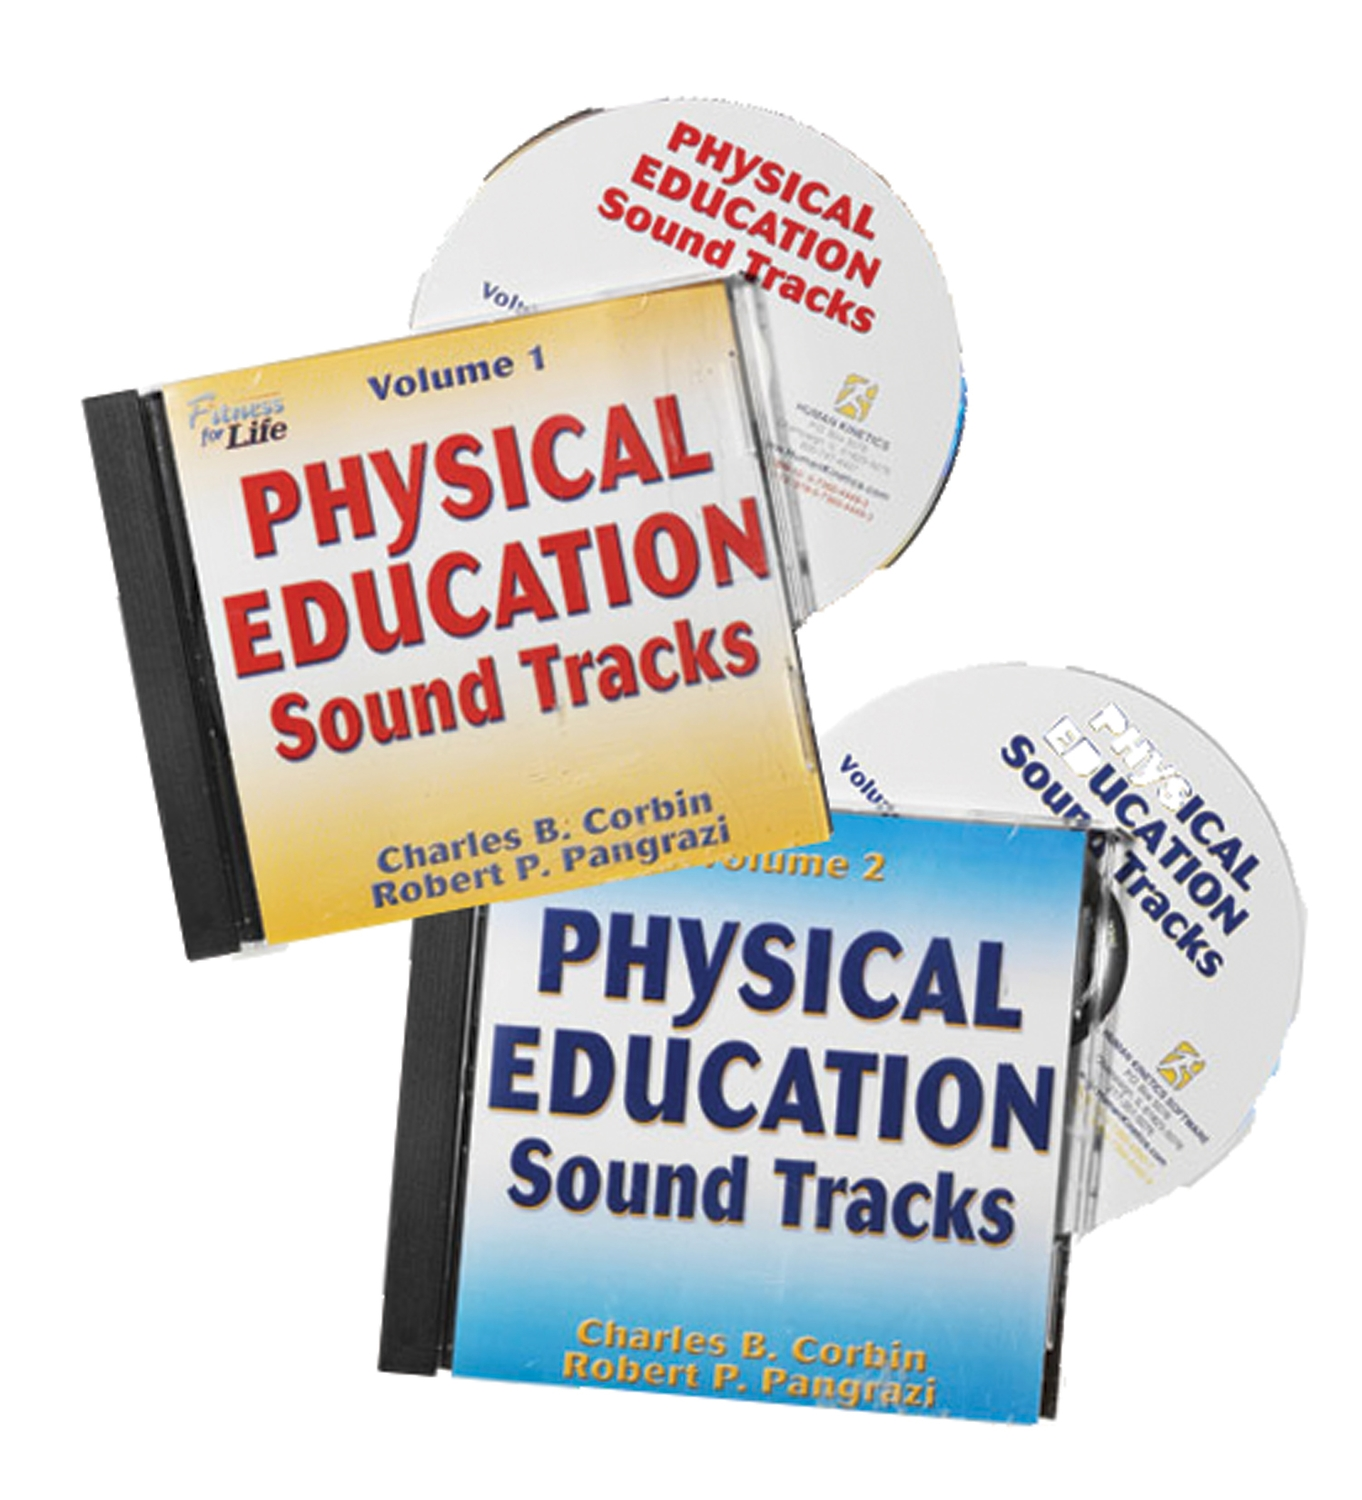 Physical education sound track CD's